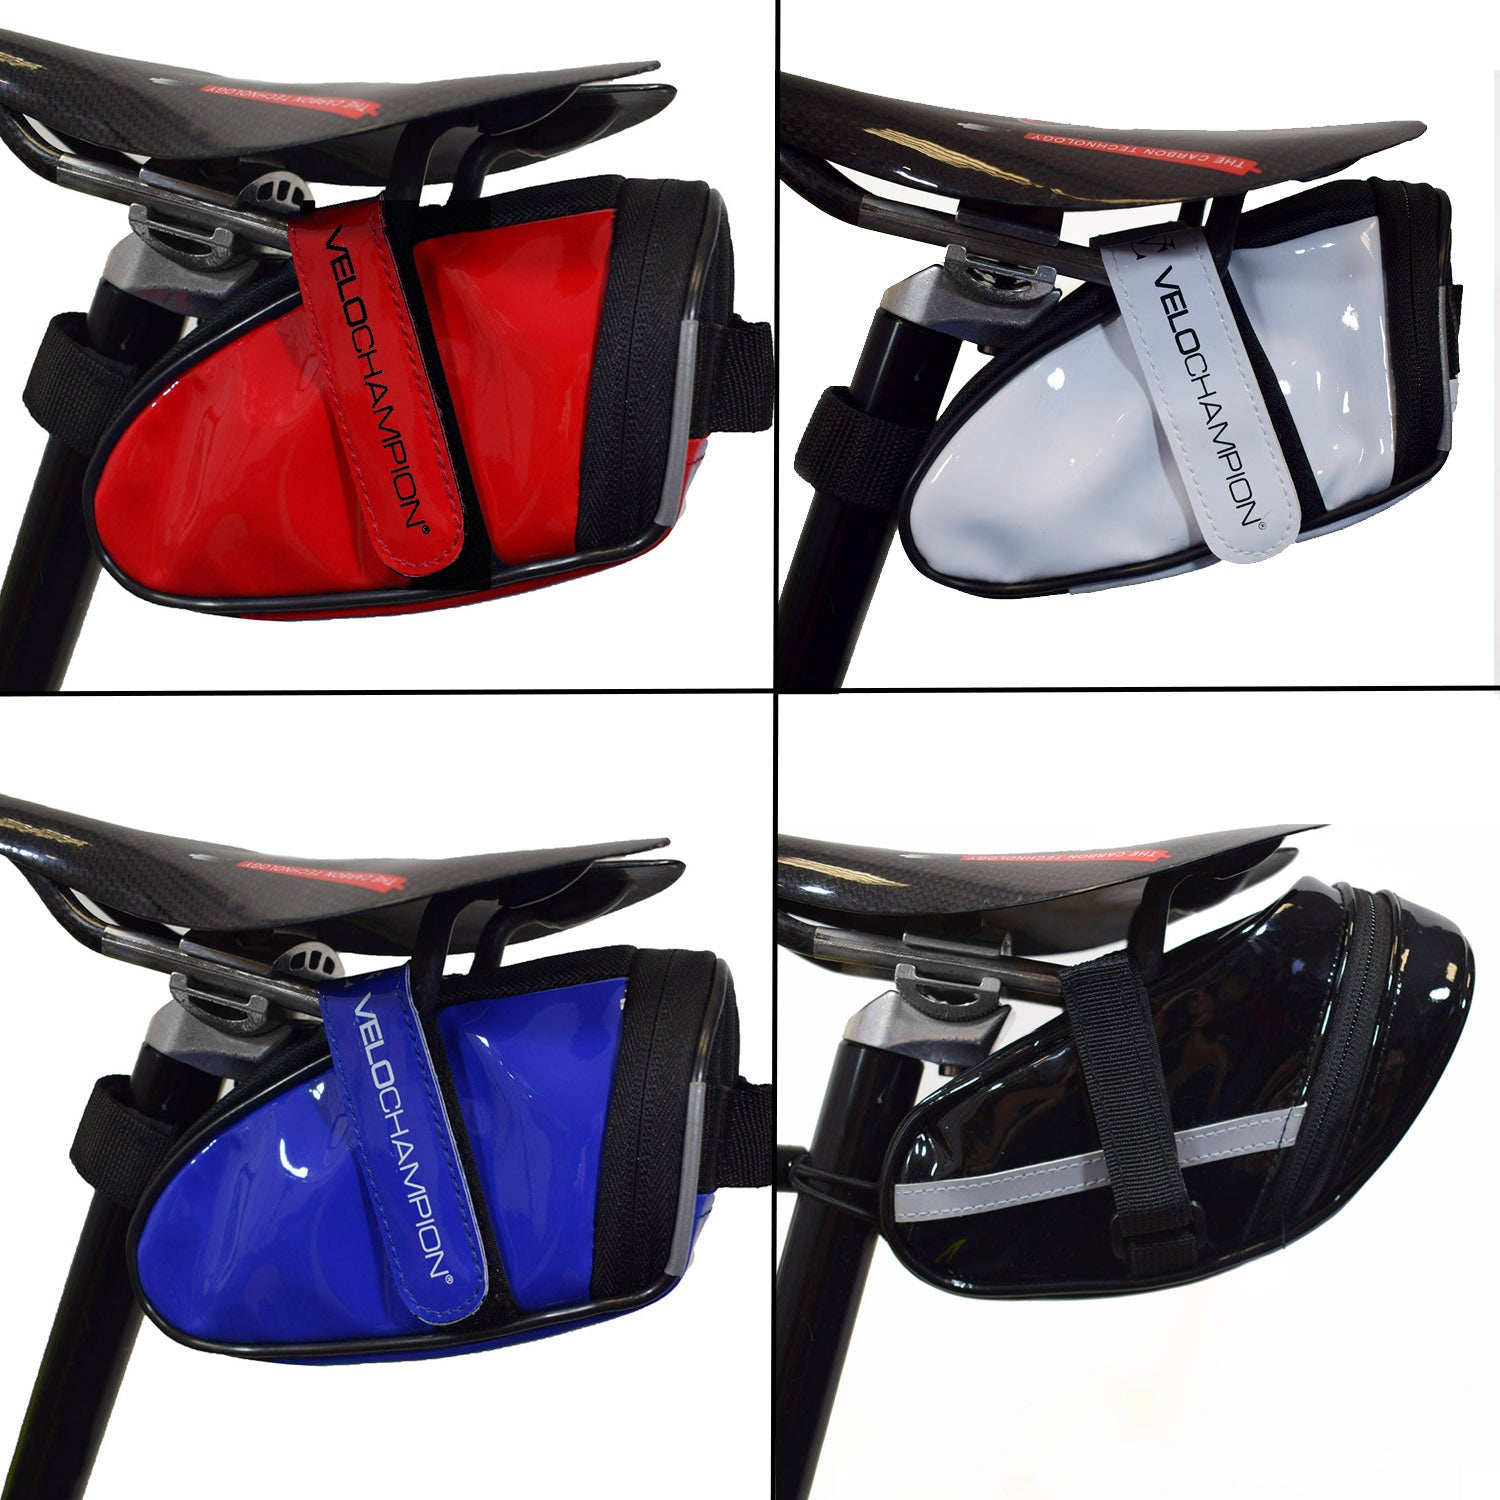 Blue Black VeloChampion Slick Bike Seat Pack Red or White Saddle Bag